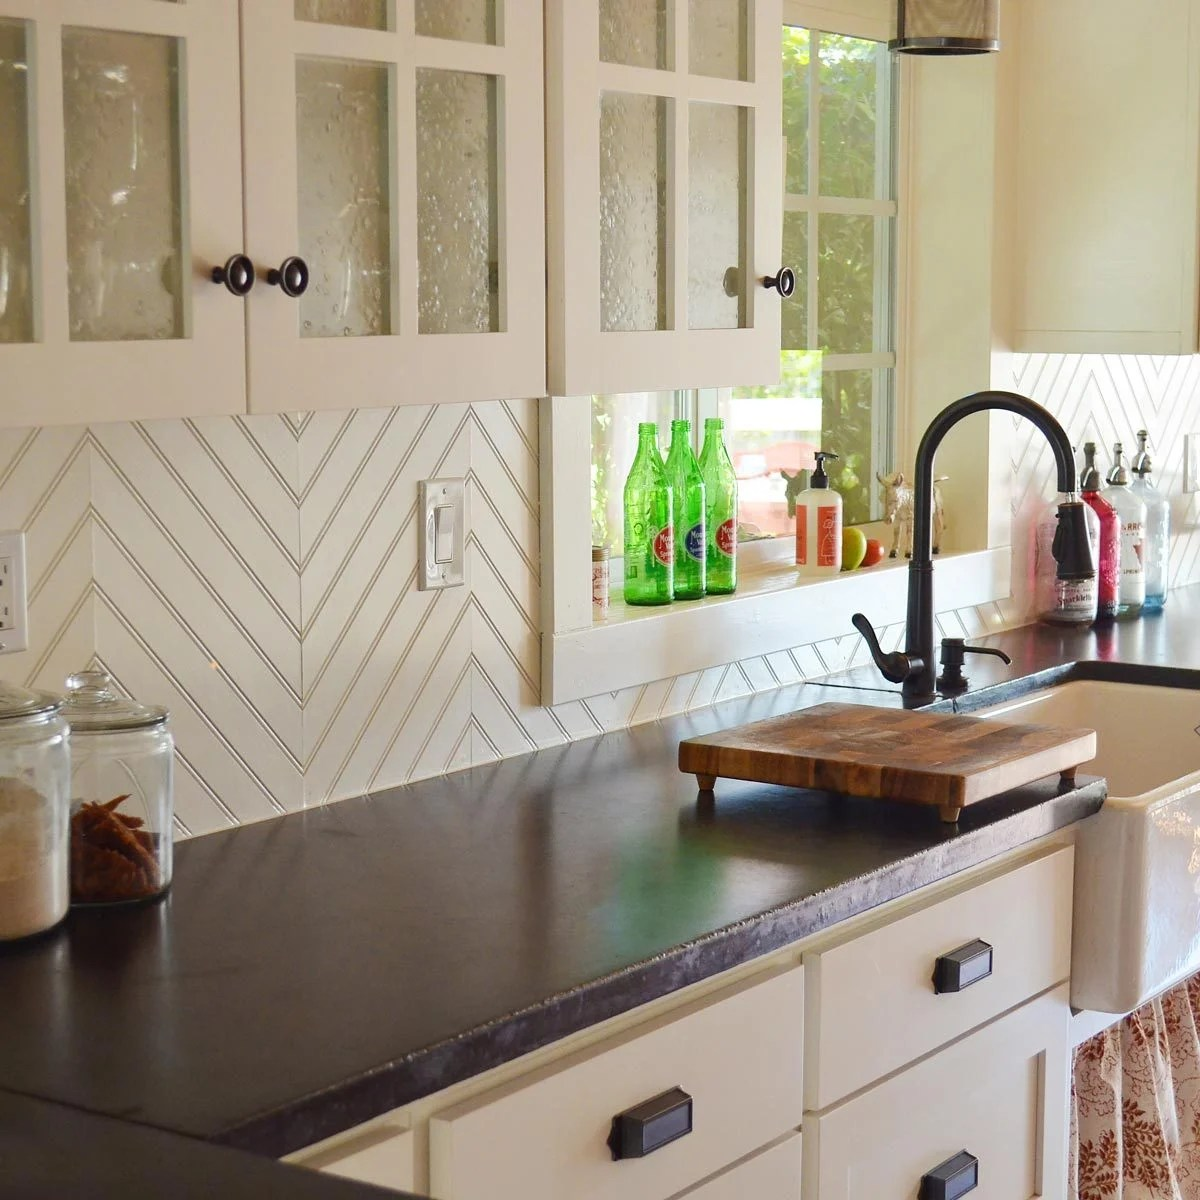 The 30 Backsplash Ideas Your Kitchen Can't Live Without The Family